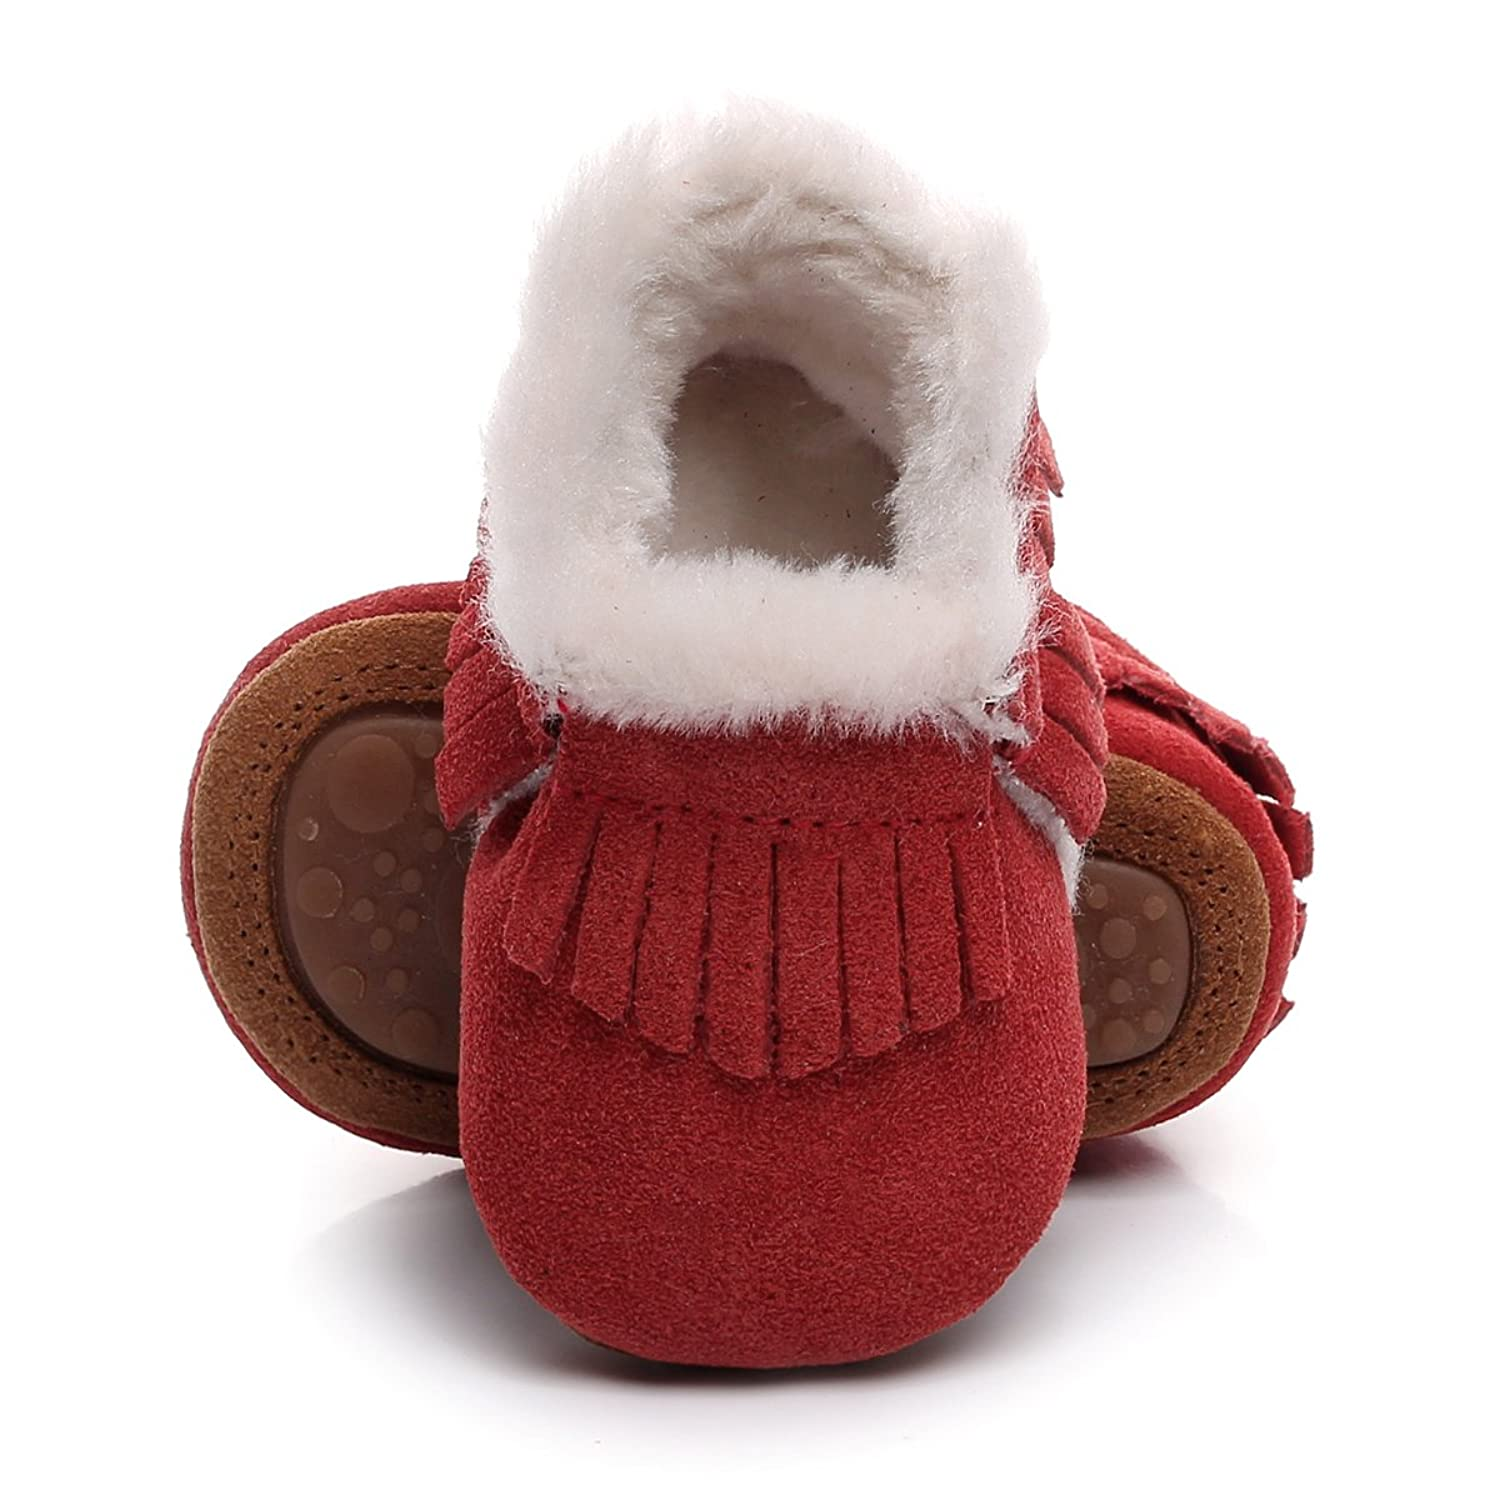 Baby Moccasins Boots With Fur Fleece Lined Rubber Soles Warm Winter